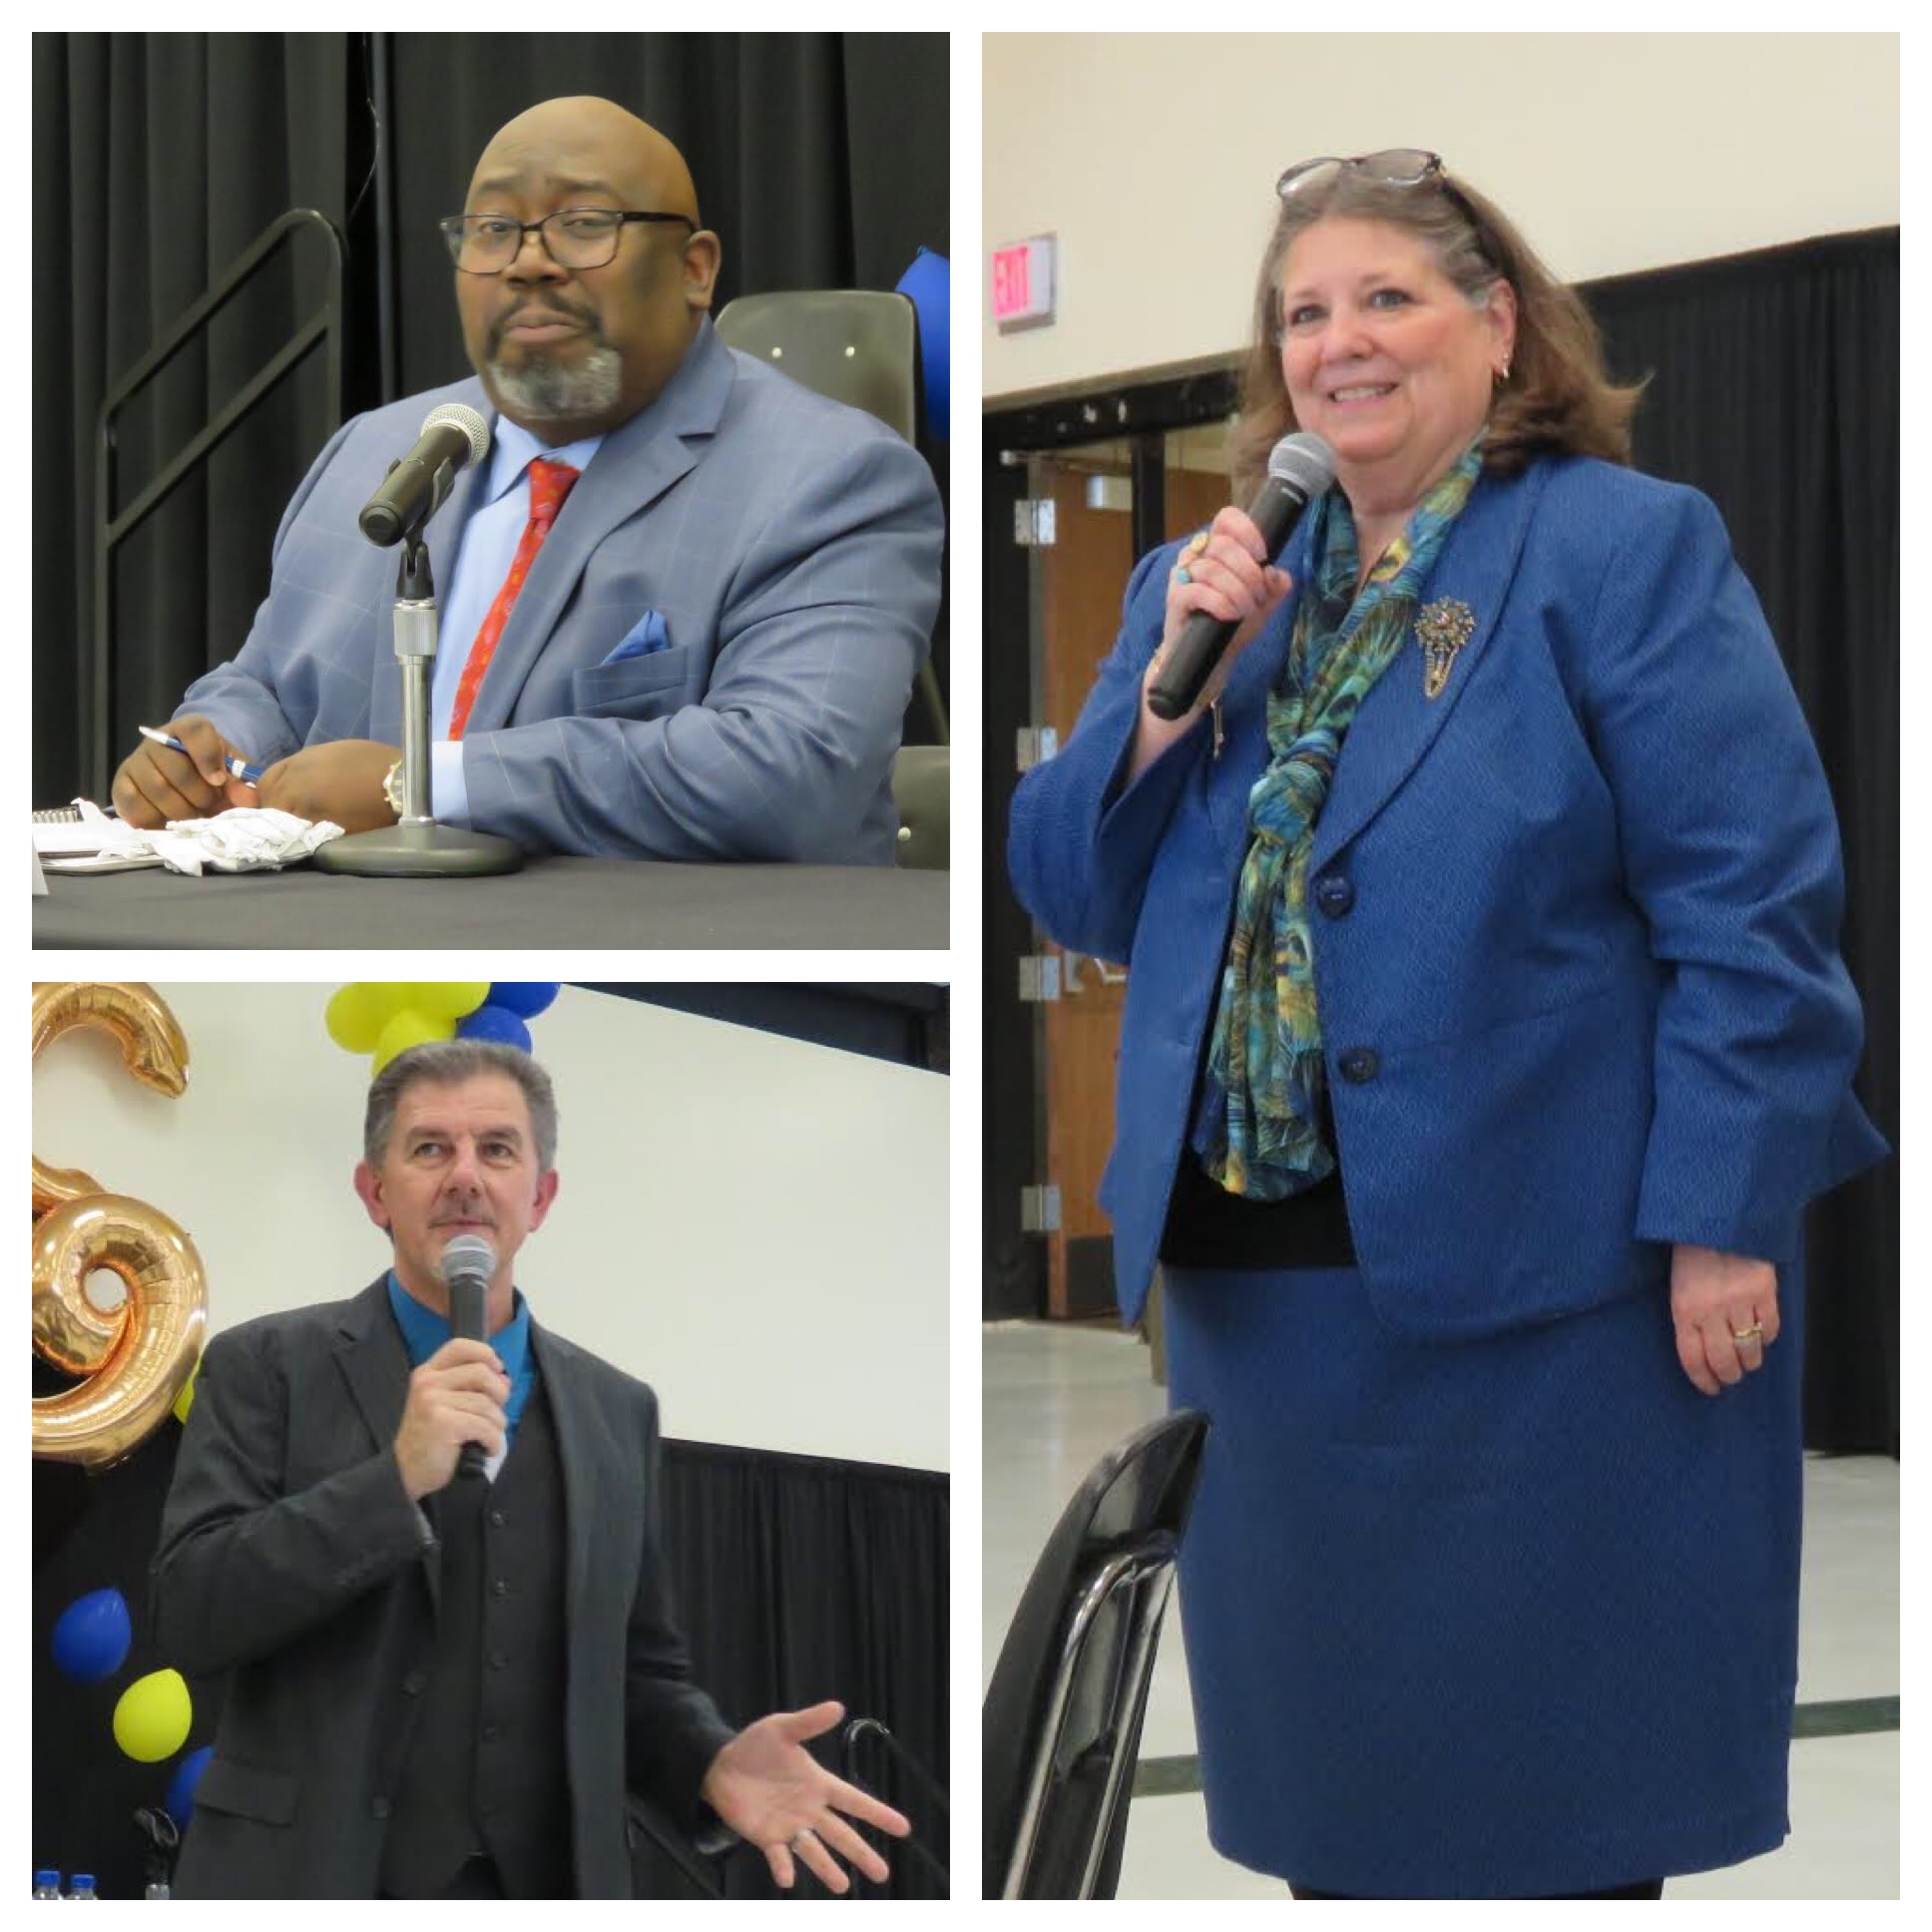 From top left, clockwise, Dr. Darrin Q. Rankin, Dr. Lori Quigley, and Dr. Stephen Dunnivant. (Photos by David Yarger)